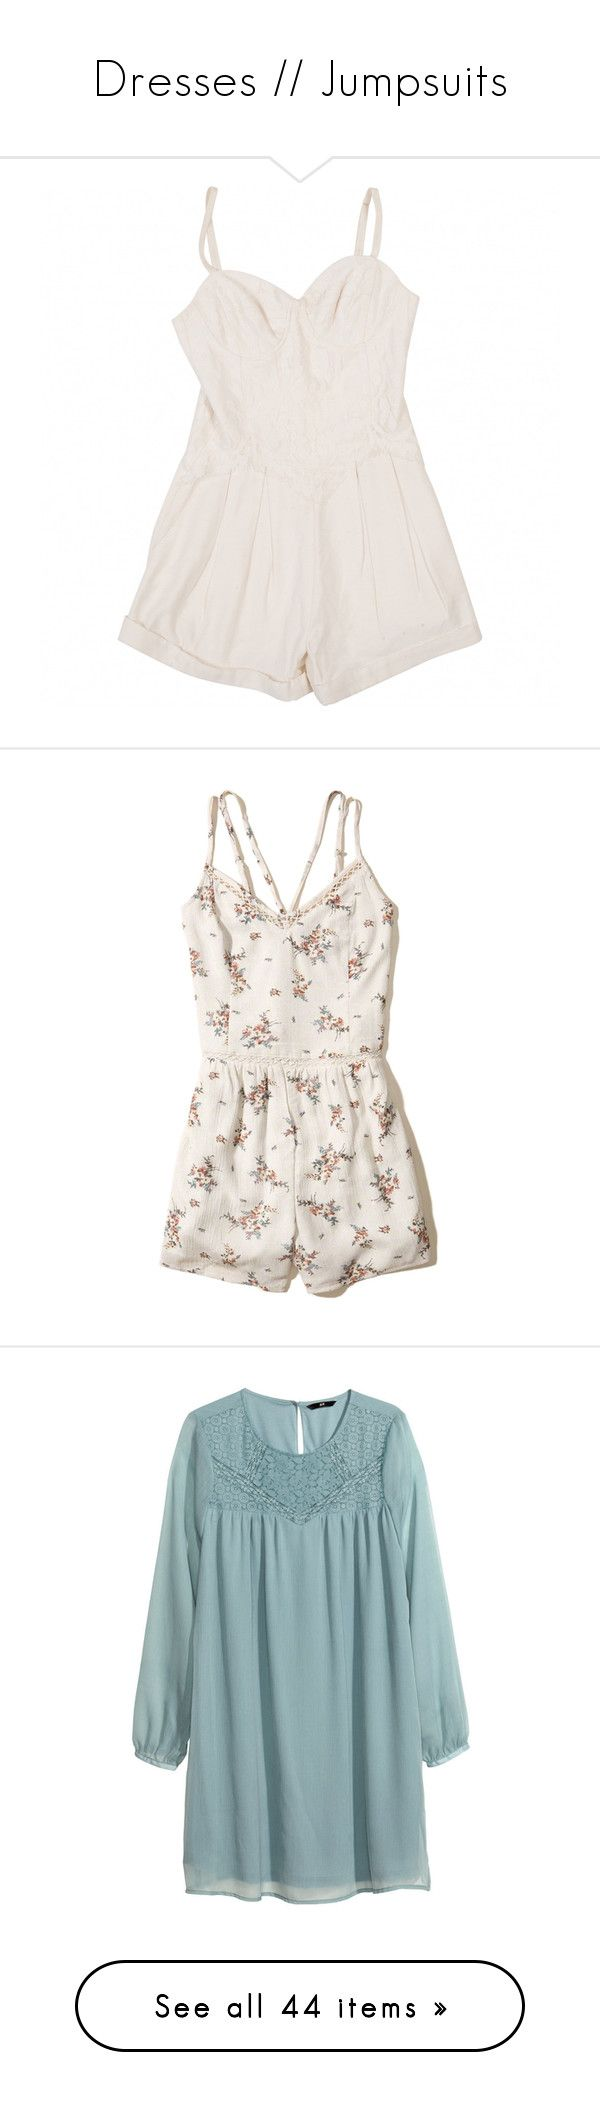 """""""Dresses // Jumpsuits"""" by twaayy ❤ liked on Polyvore featuring jumpsuits, rompers, dresses, playsuits, ecru, jump suit, white jumpsuit, white romper, white jump suit and romper jumpsuit"""